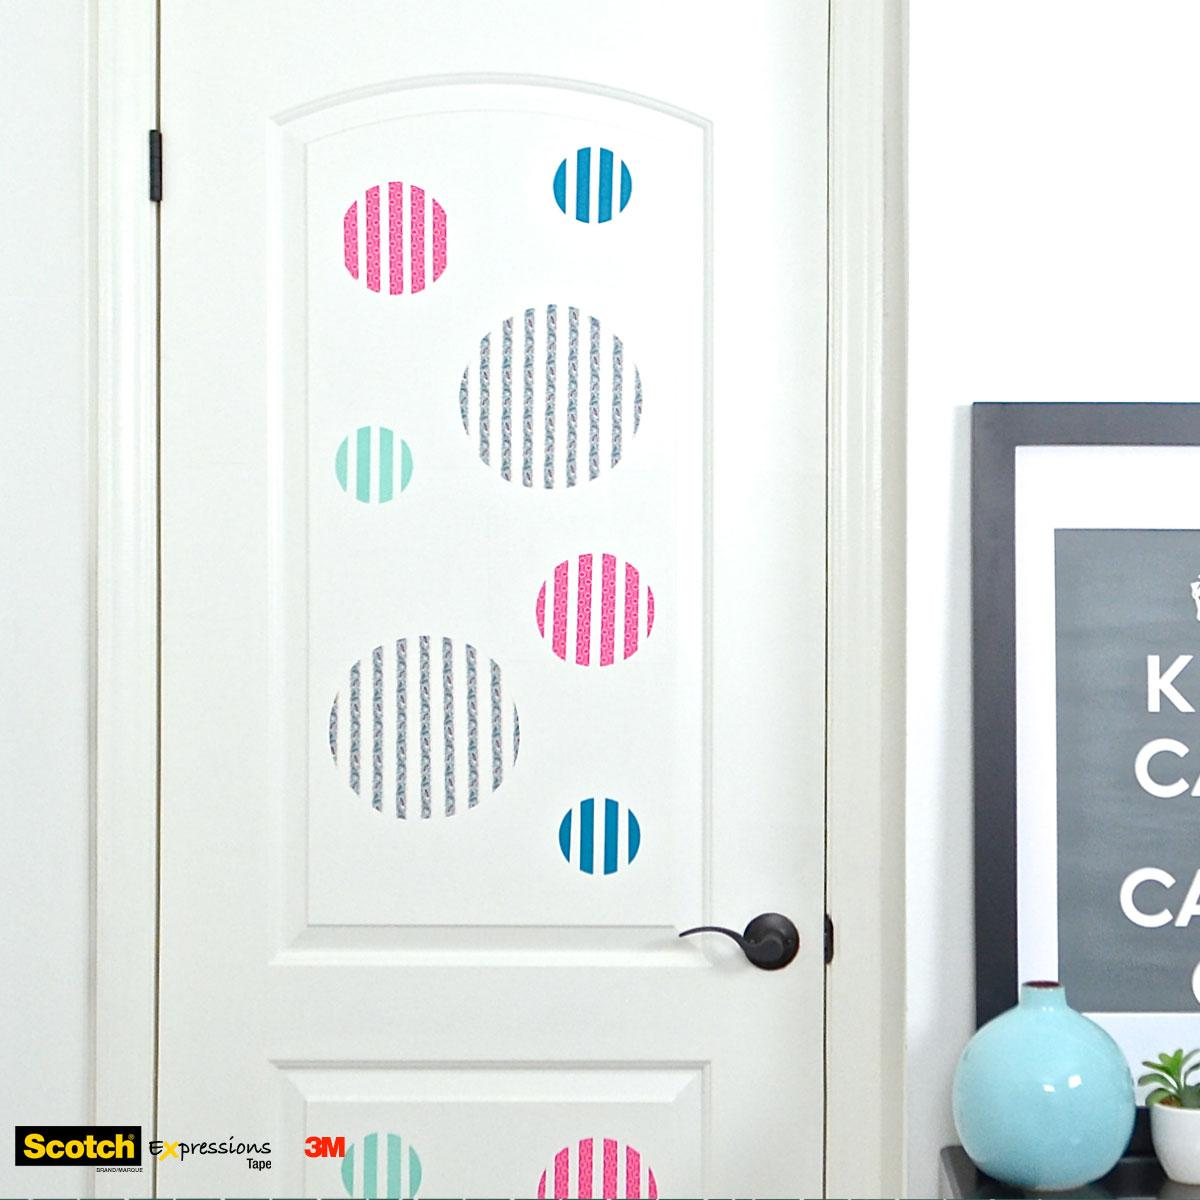 Scotch® Brand Canada on Twitter  A #polkadot door? Why not! Be sure to give it a try and share a pic of the results in the #comments!  sc 1 st  Twitter & Scotch® Brand Canada on Twitter: